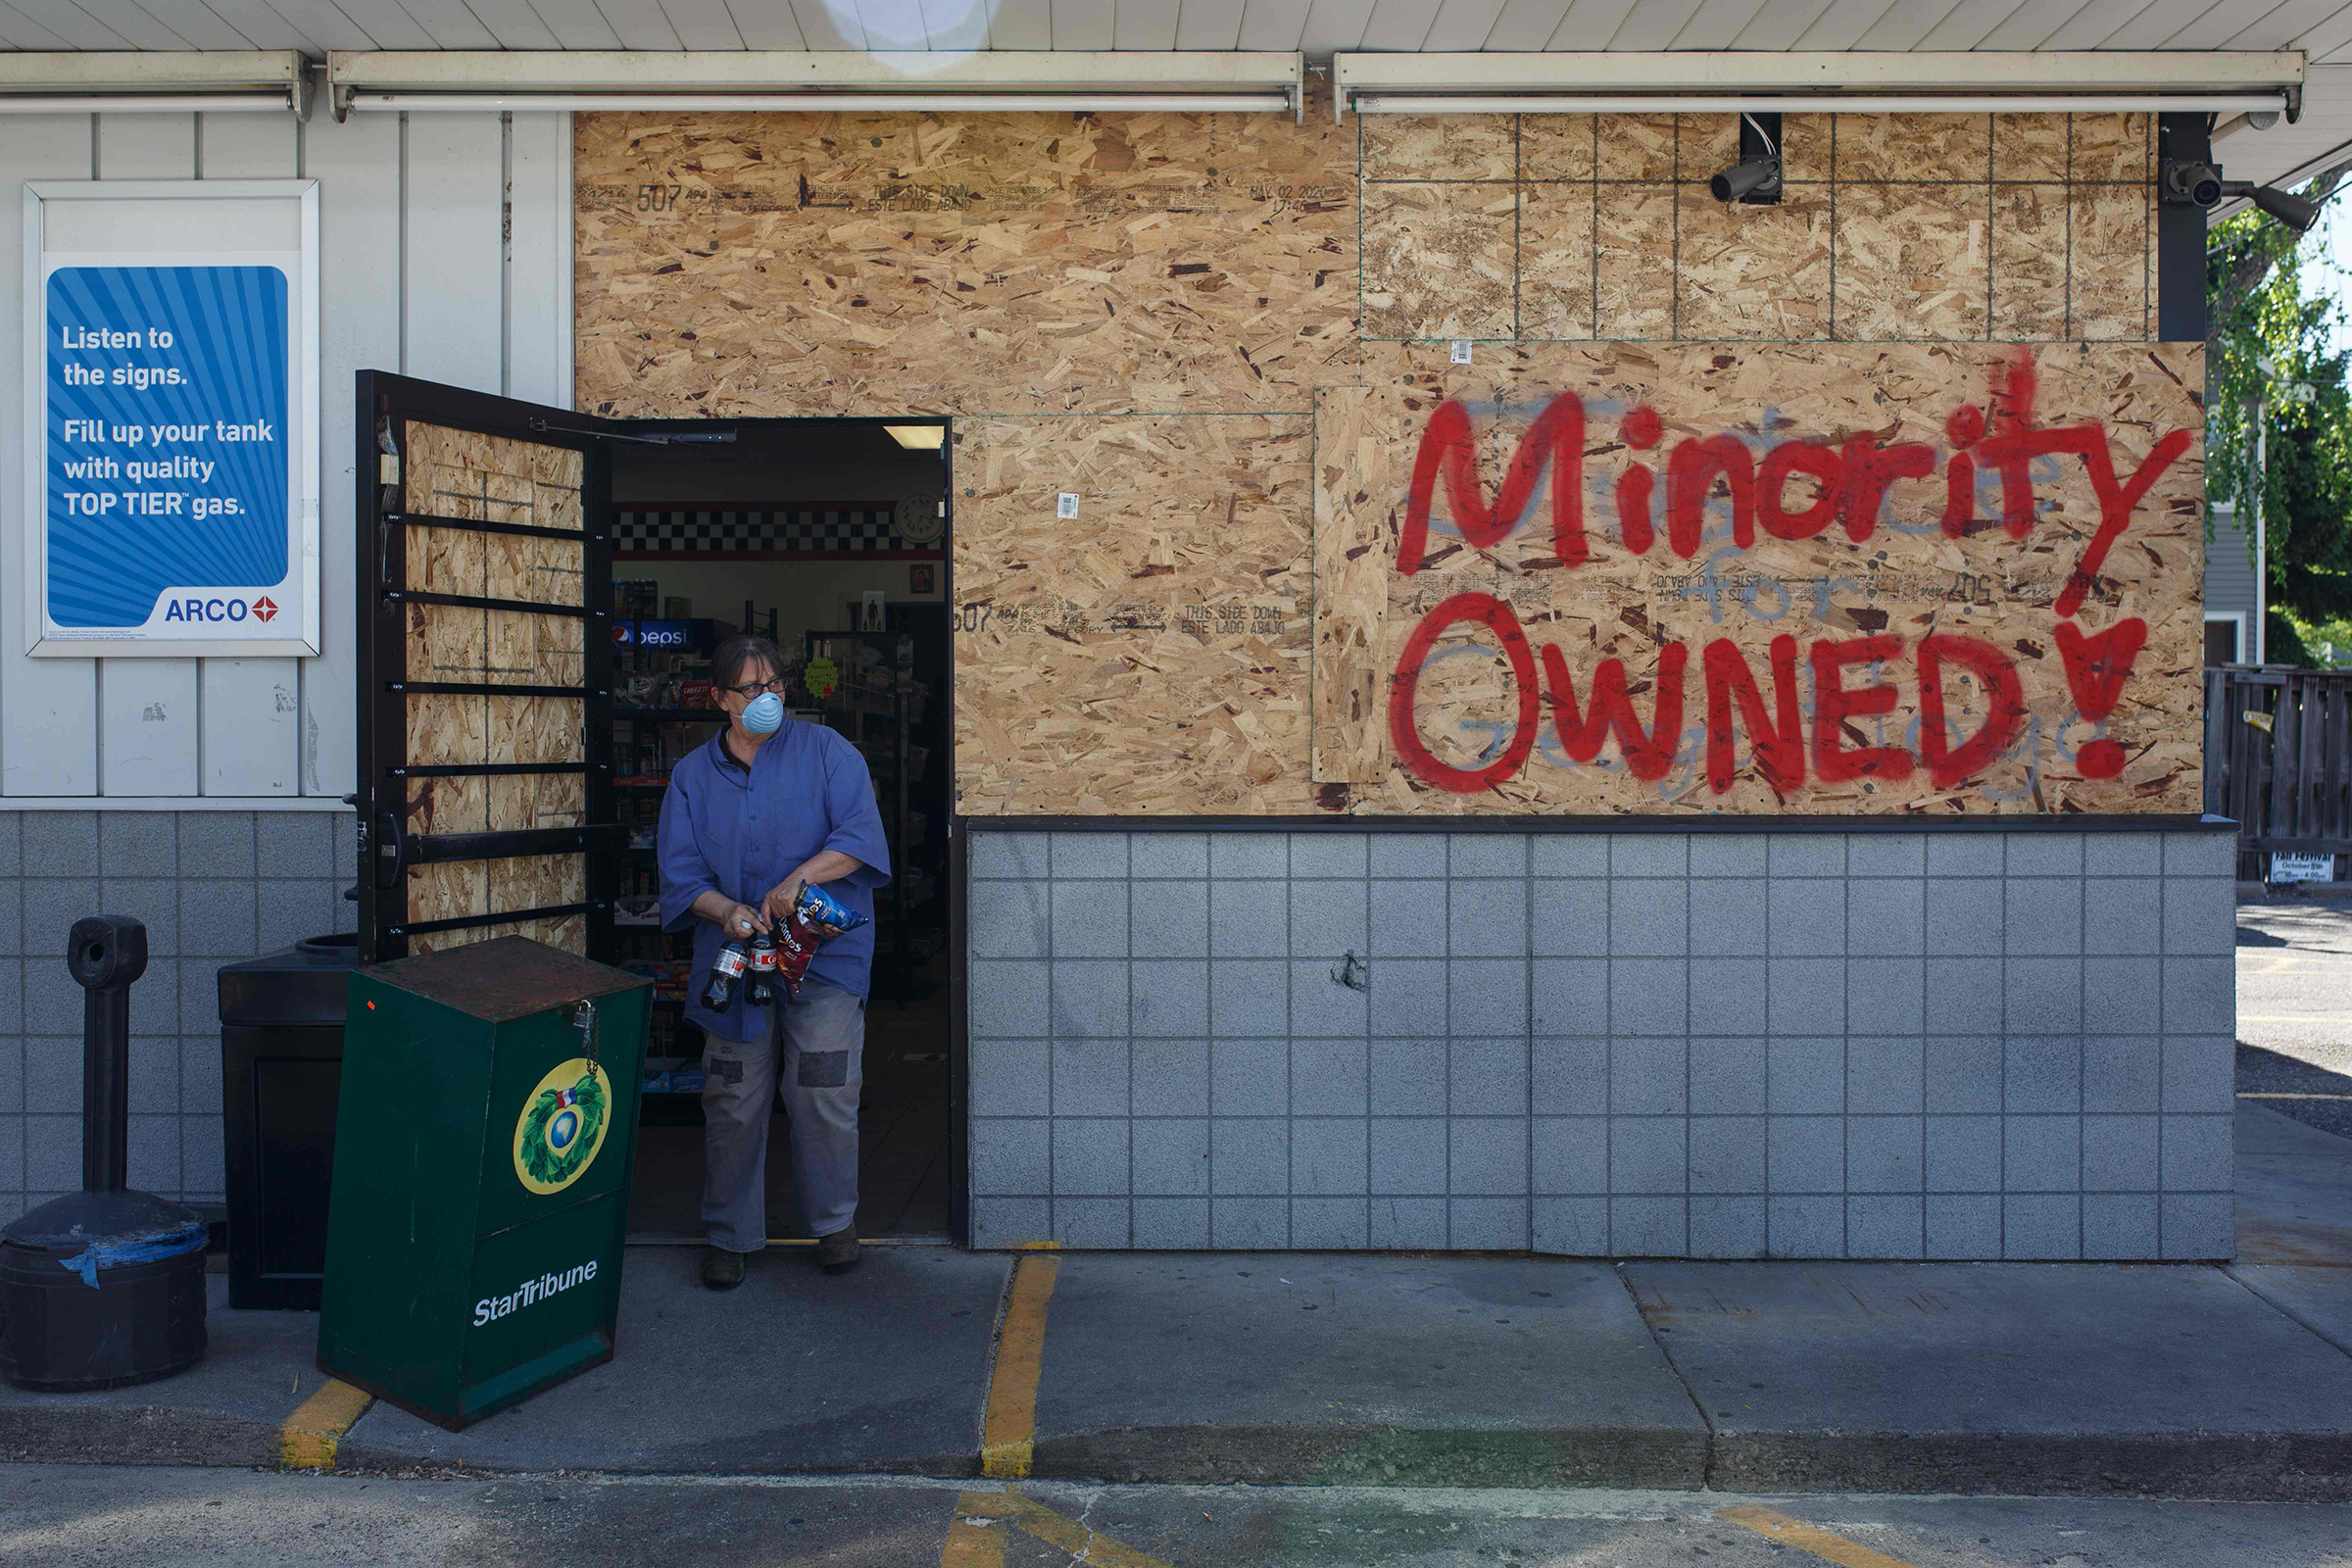 A store is boarded up as local businesses prepare themselves from violent demonstrations in Minneapolis, Minn. on May 30, 2020.